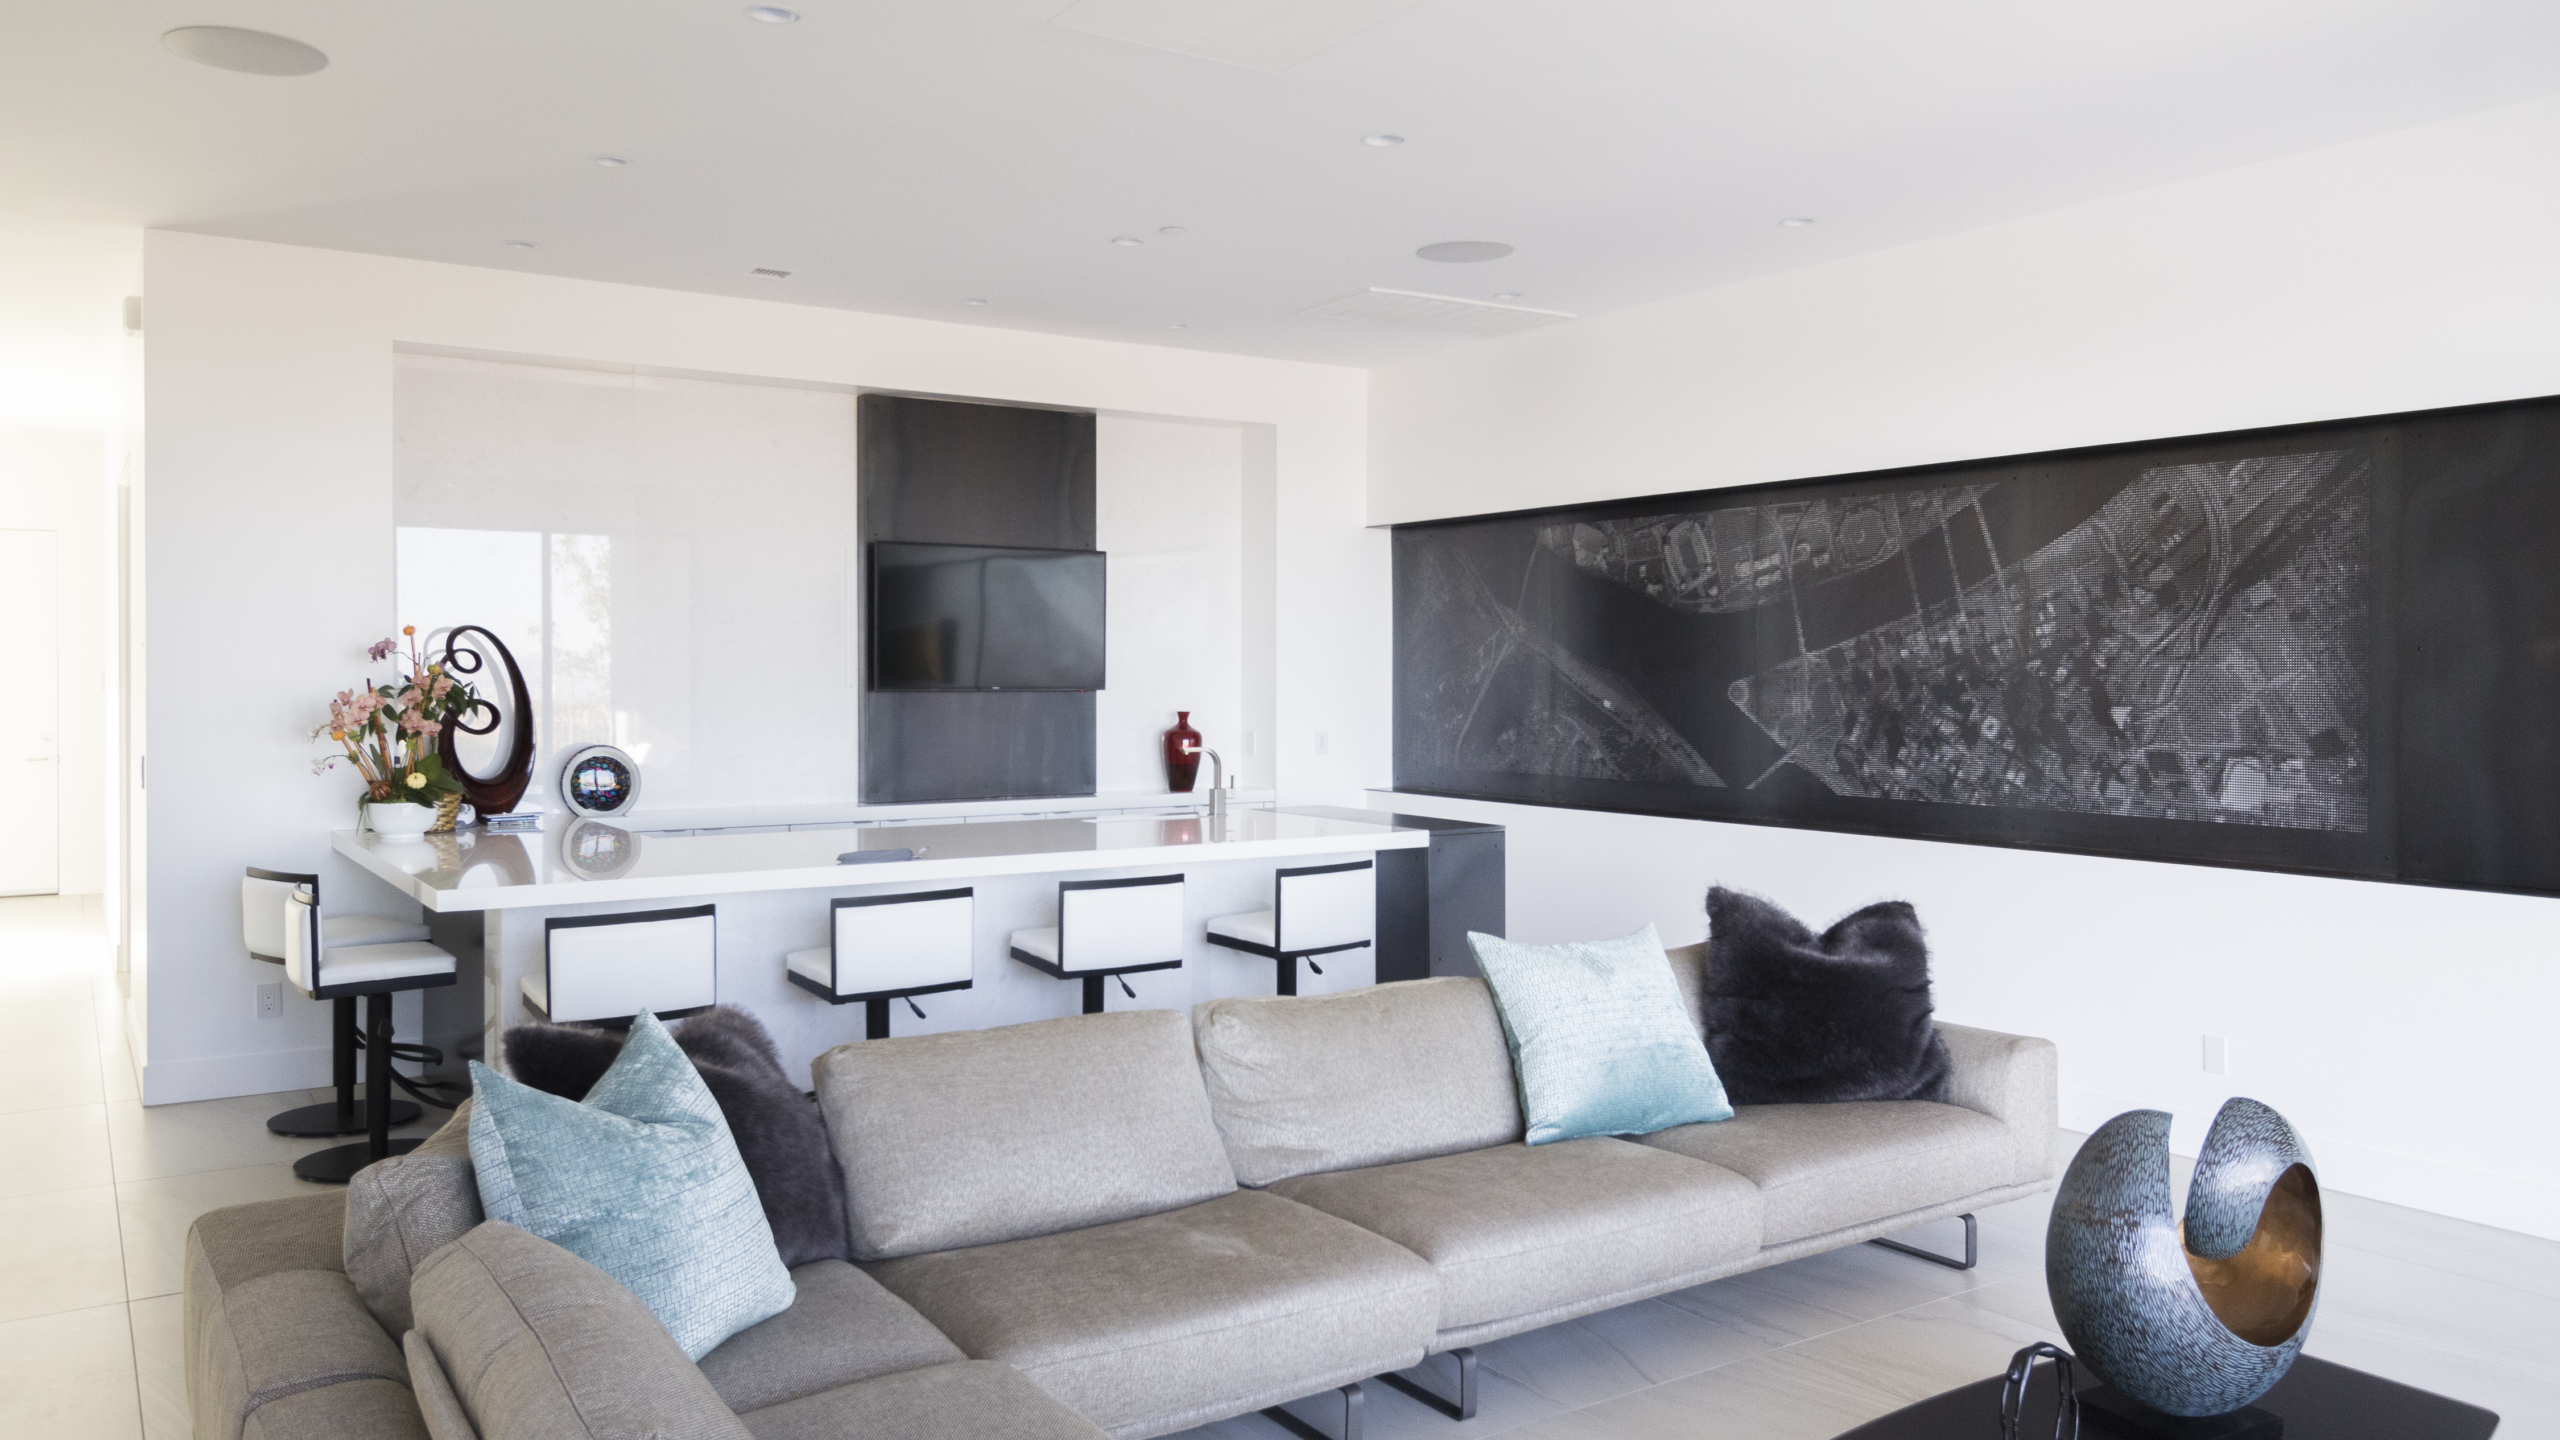 Interior view of the Ridges Residence artwall.